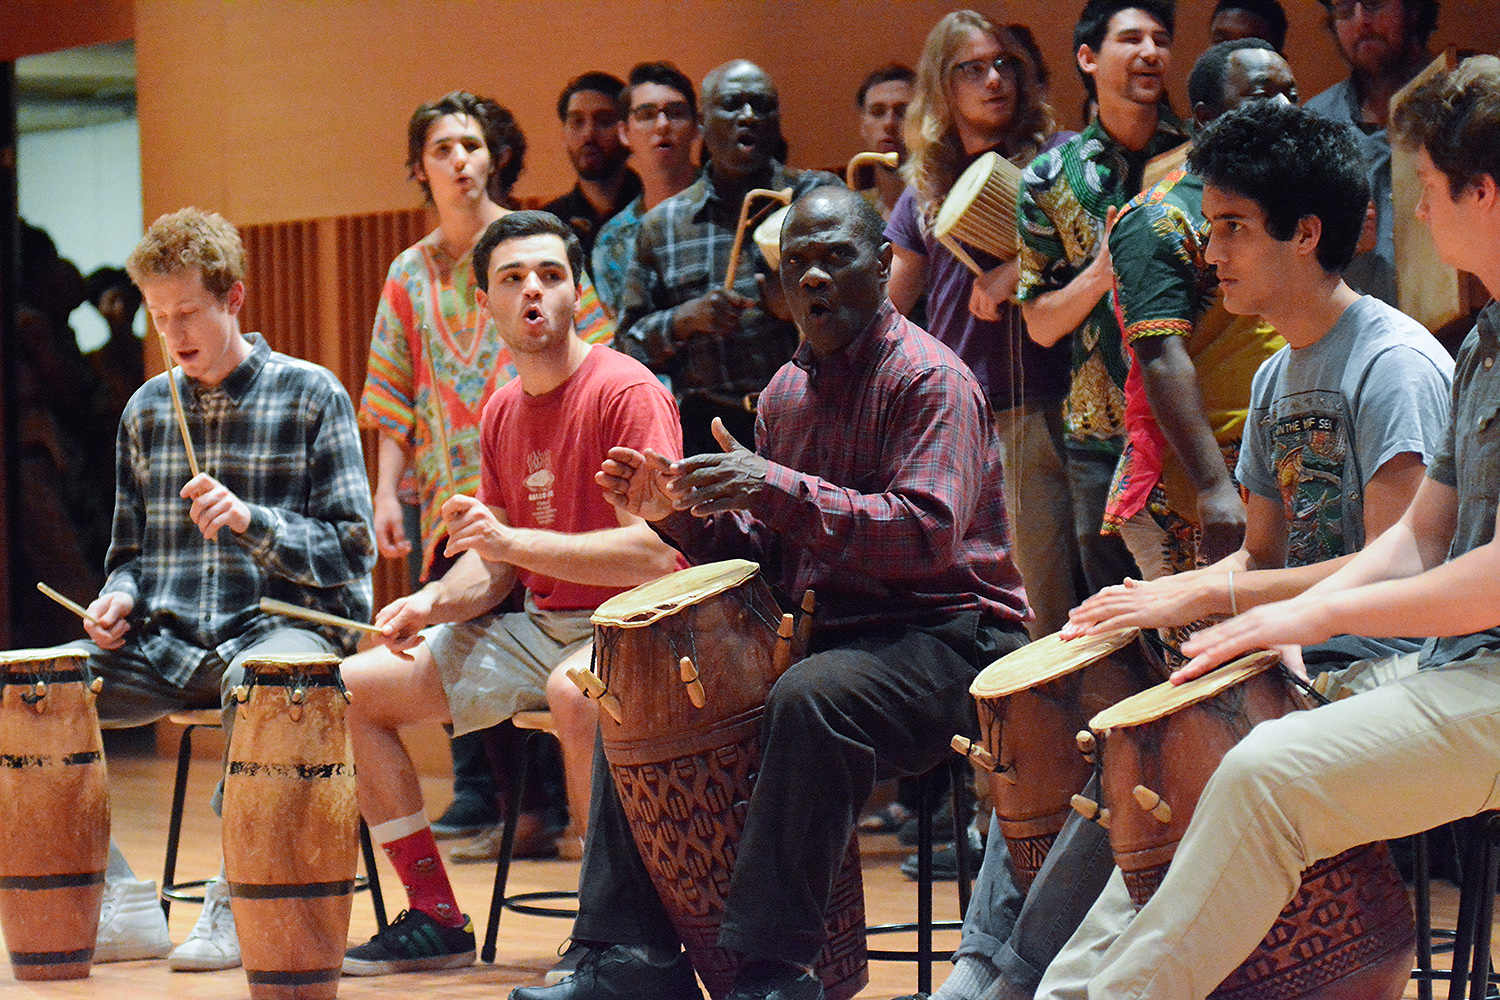 Participants in the West African Drumming and Dance workshop performed in Crowell Concert Hall on Nov. 7, with retiring Adjunct Professor of Music Abraham Adzenyah and alumni accompanying on drums. Current Wesleyan students also performed. (Photo by John Van Vlack)